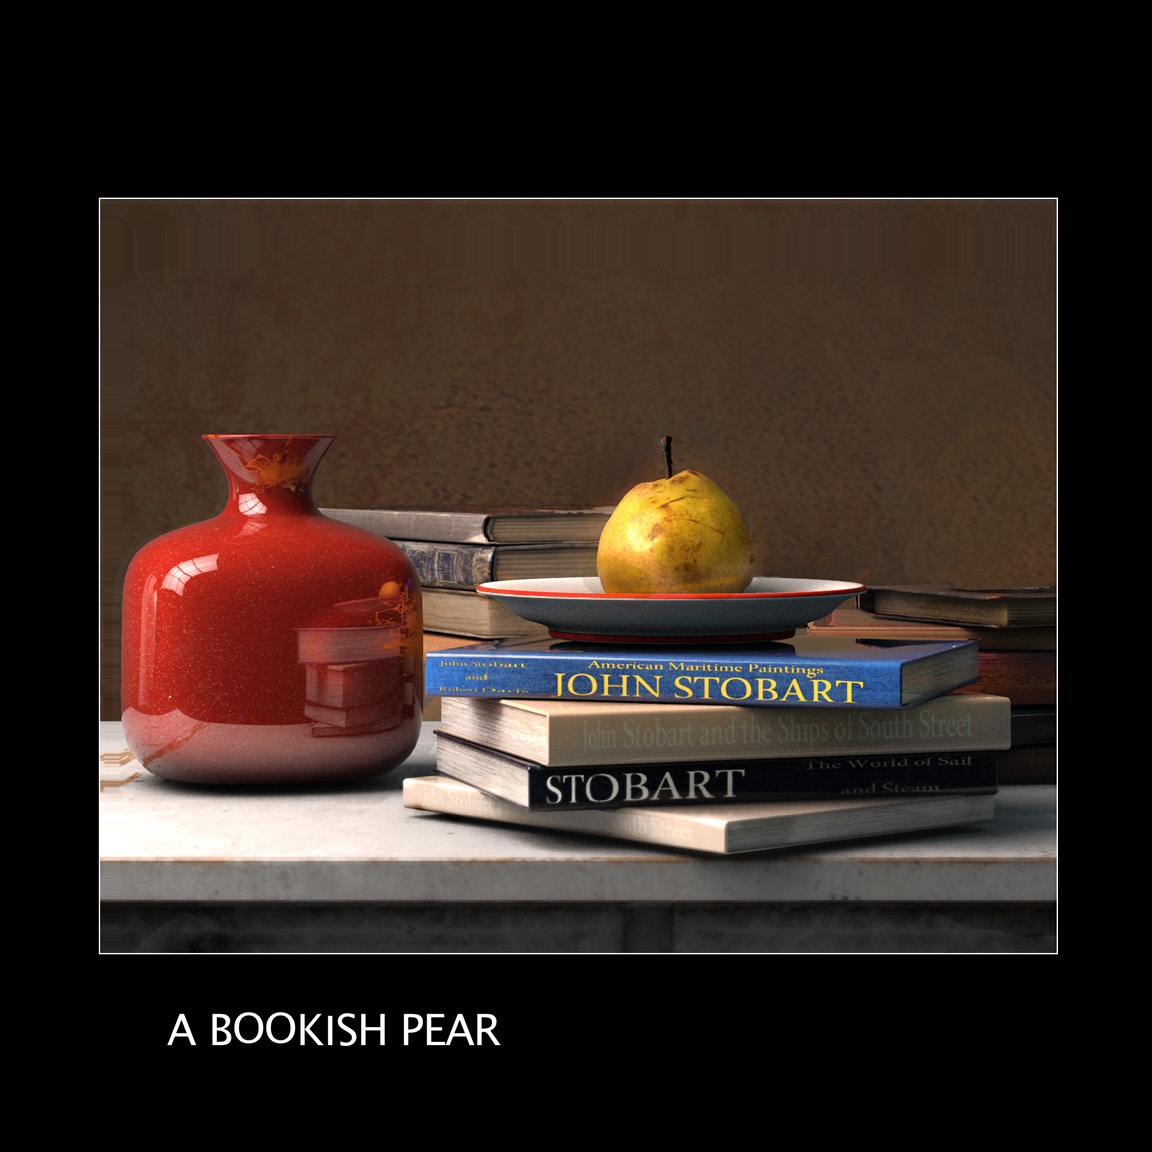 A Bookish Pear